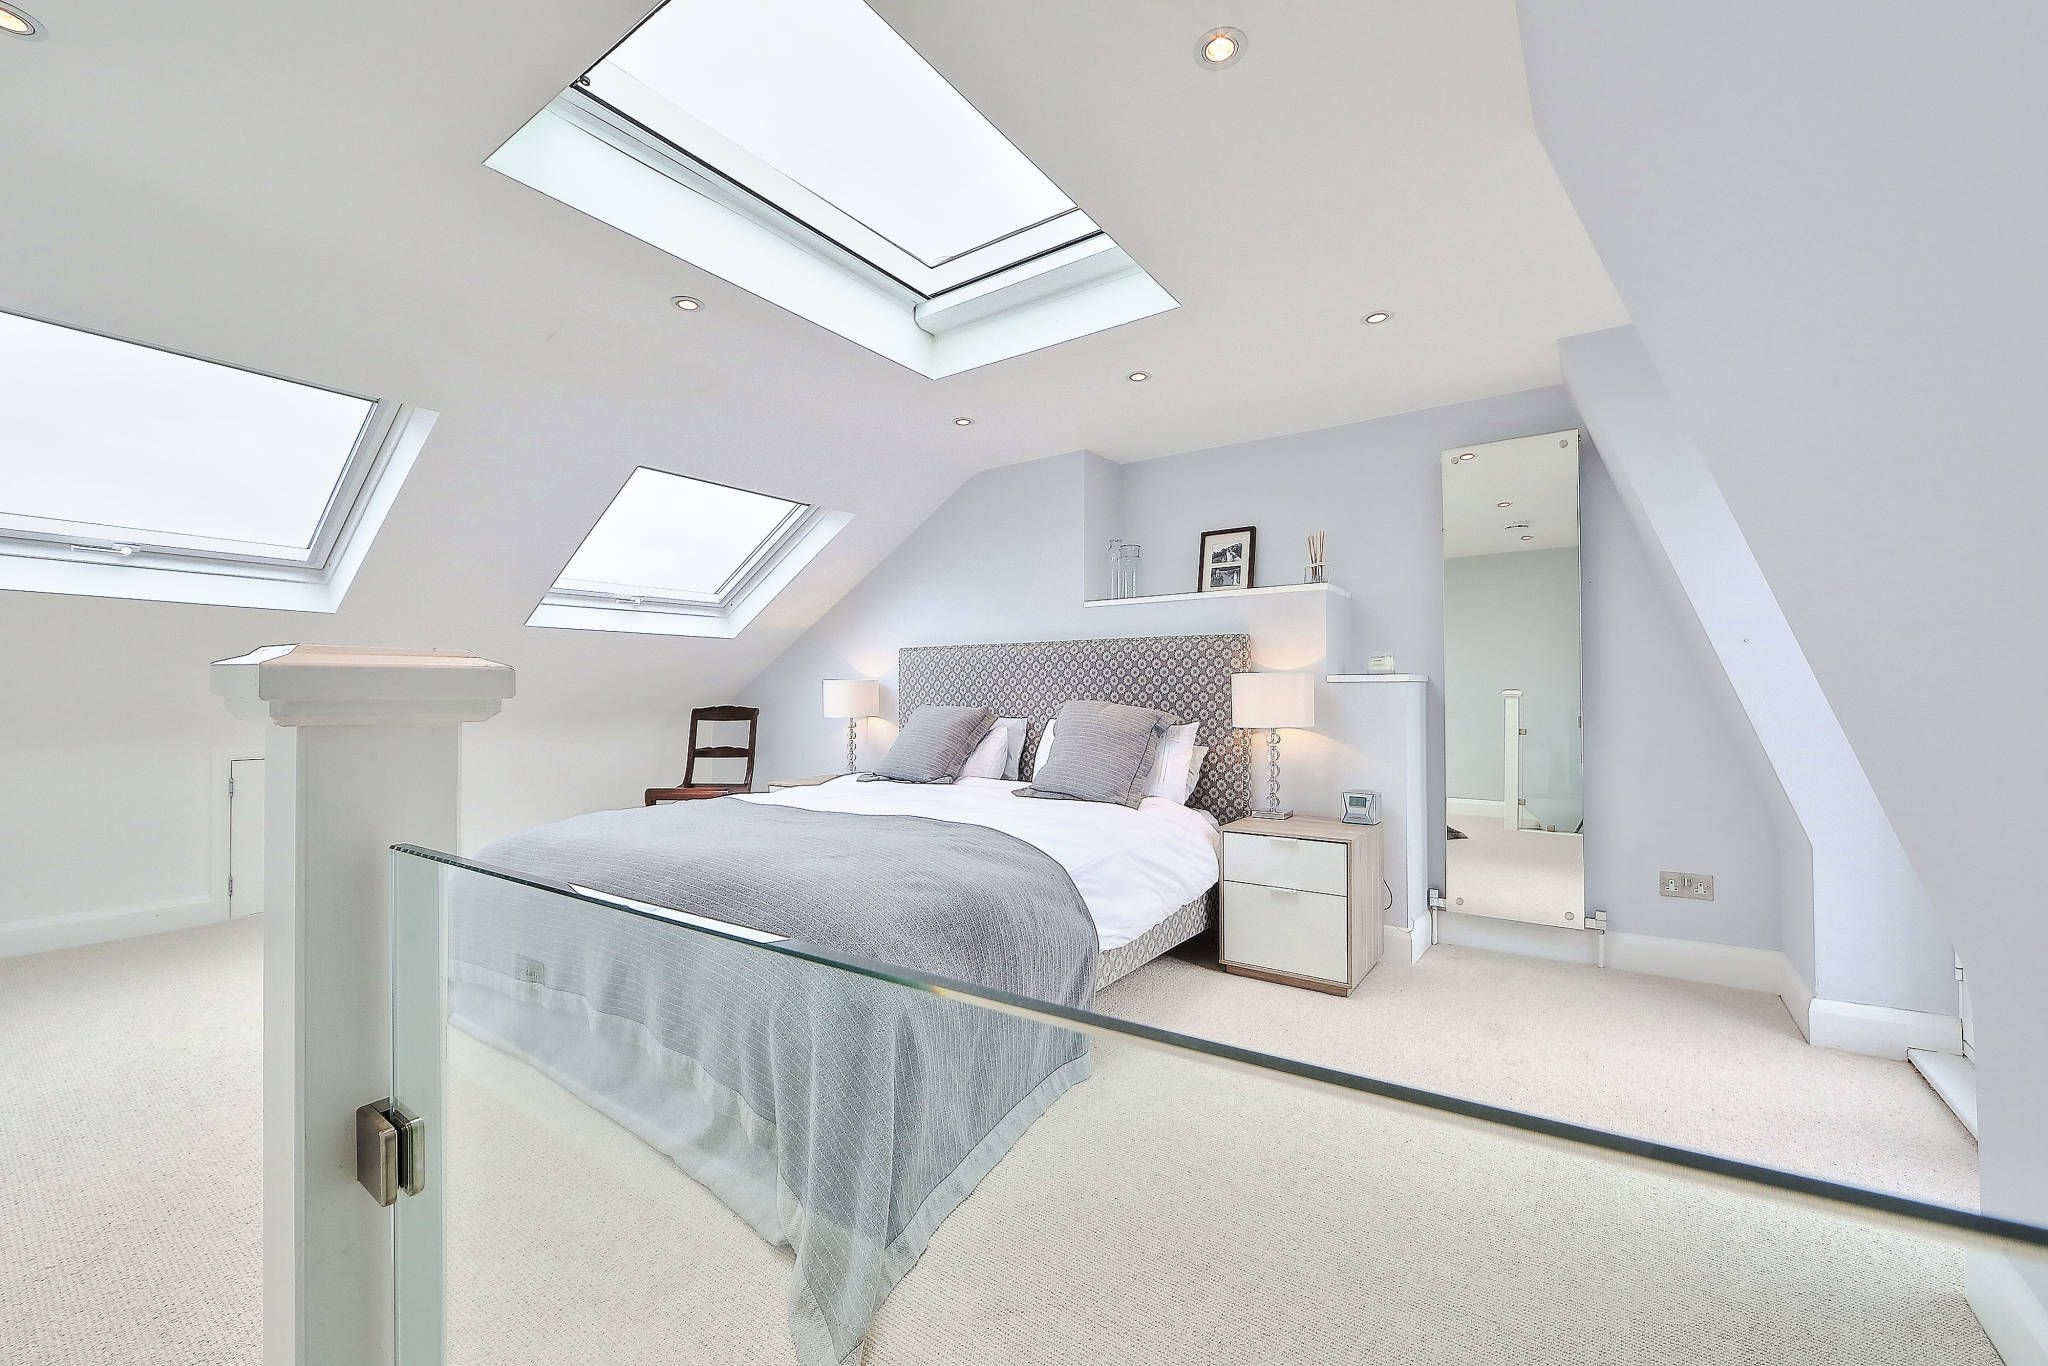 L shaped master bedroom  lshaped loft conversion wimbledon  Modern bedroom by nuspace More